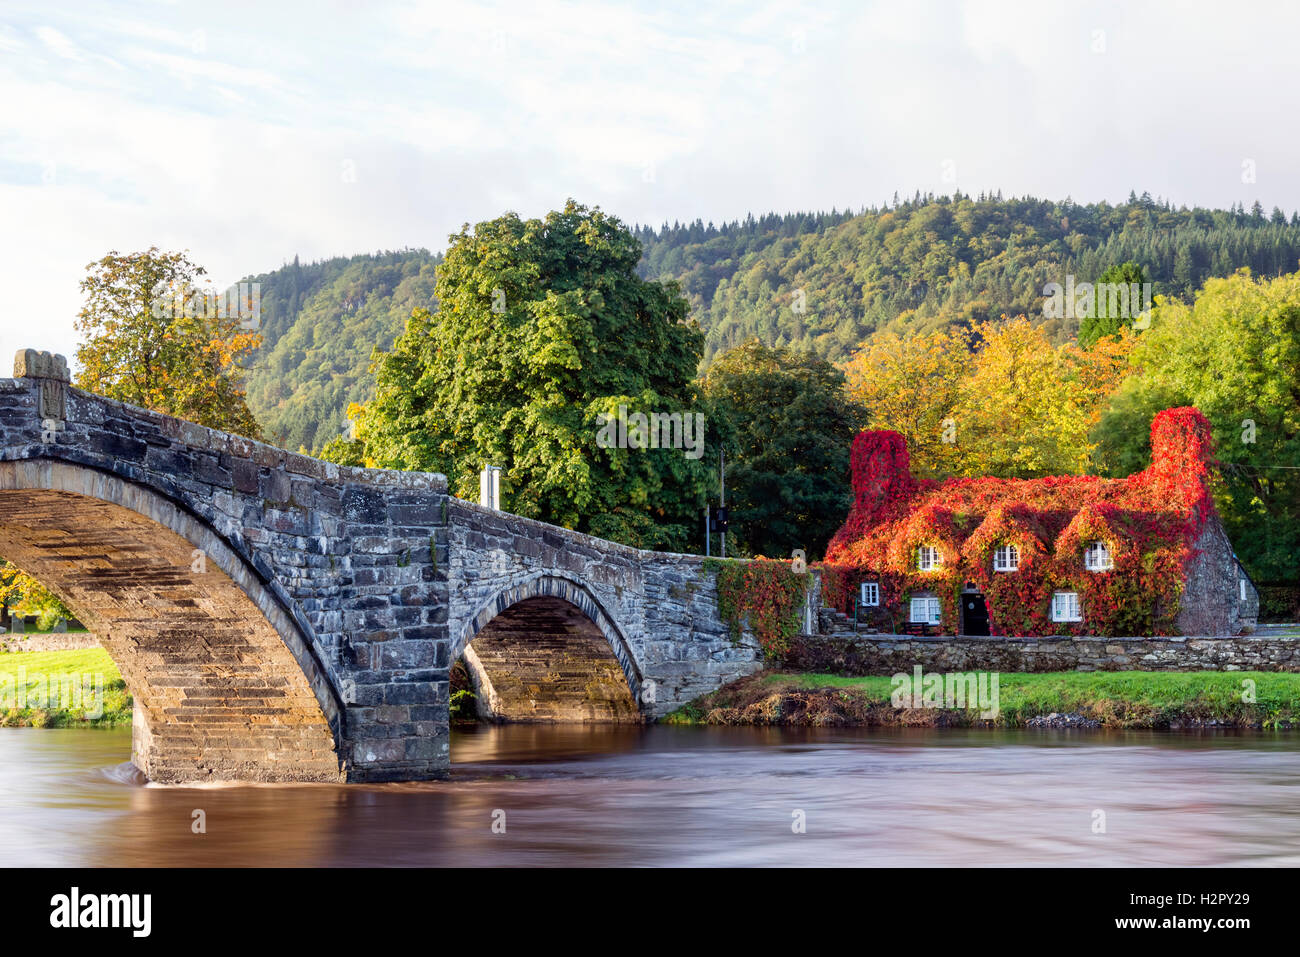 Virginia creeper / ivy showing autumn colour covering Llanrwst tearooms, Wales, UK. - Stock Image